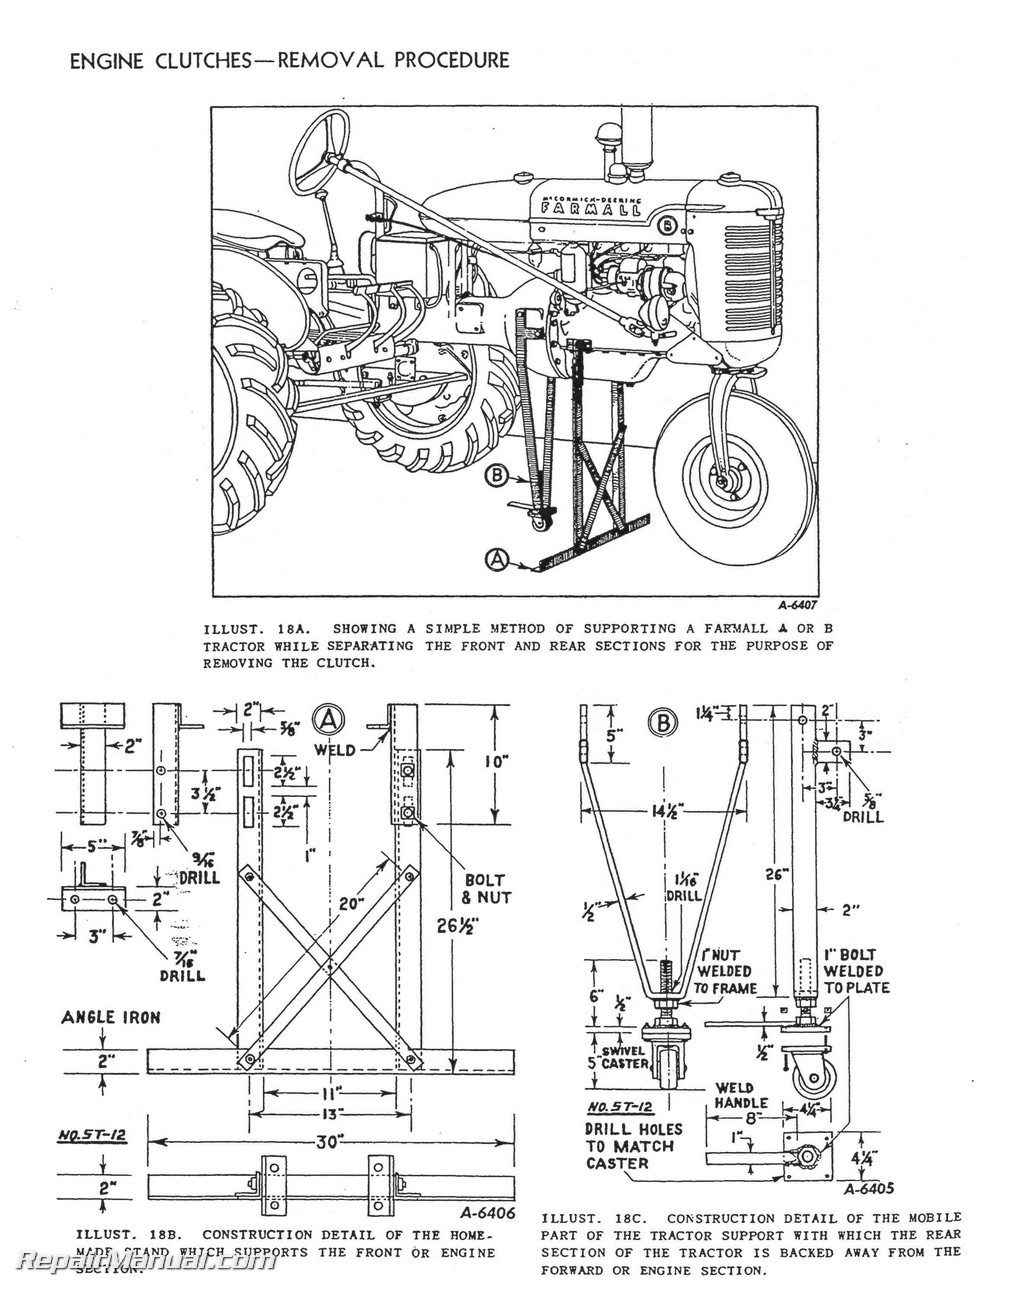 harvester electric motor wiring diagram international harvester farmall tractor engine clutch ... international harvester model h wiring diagram #6